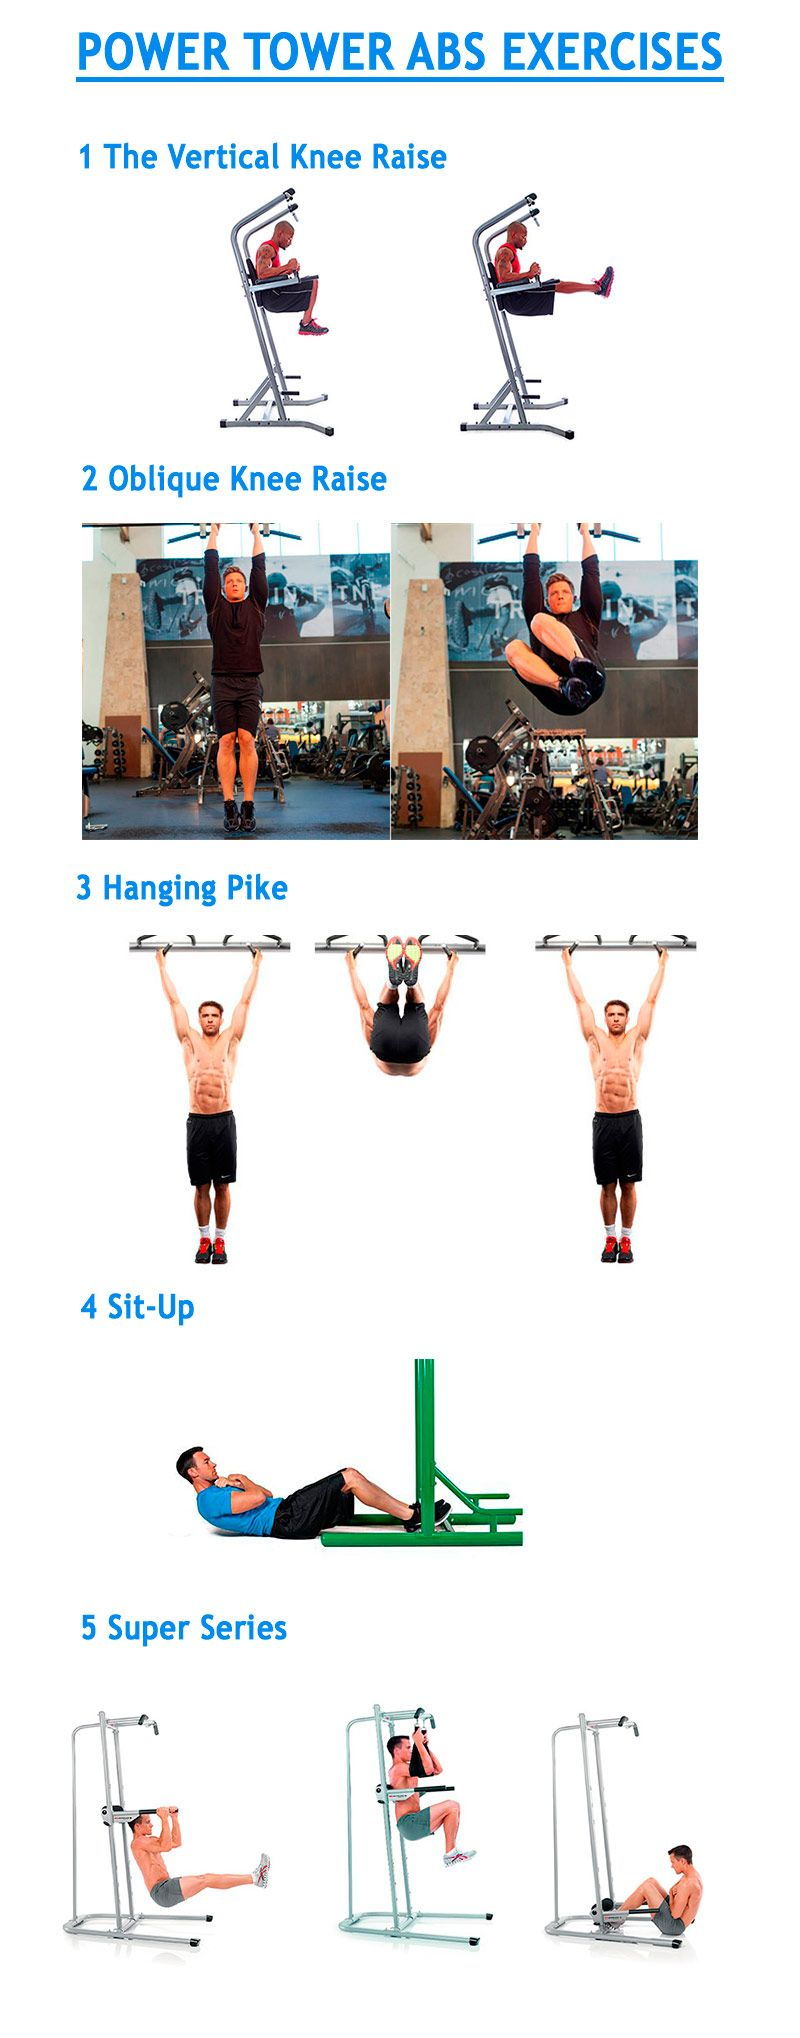 Power Tower ABS Exercises - basic methods of training the abdominal muscles #powertower #powertowerworkout #workout